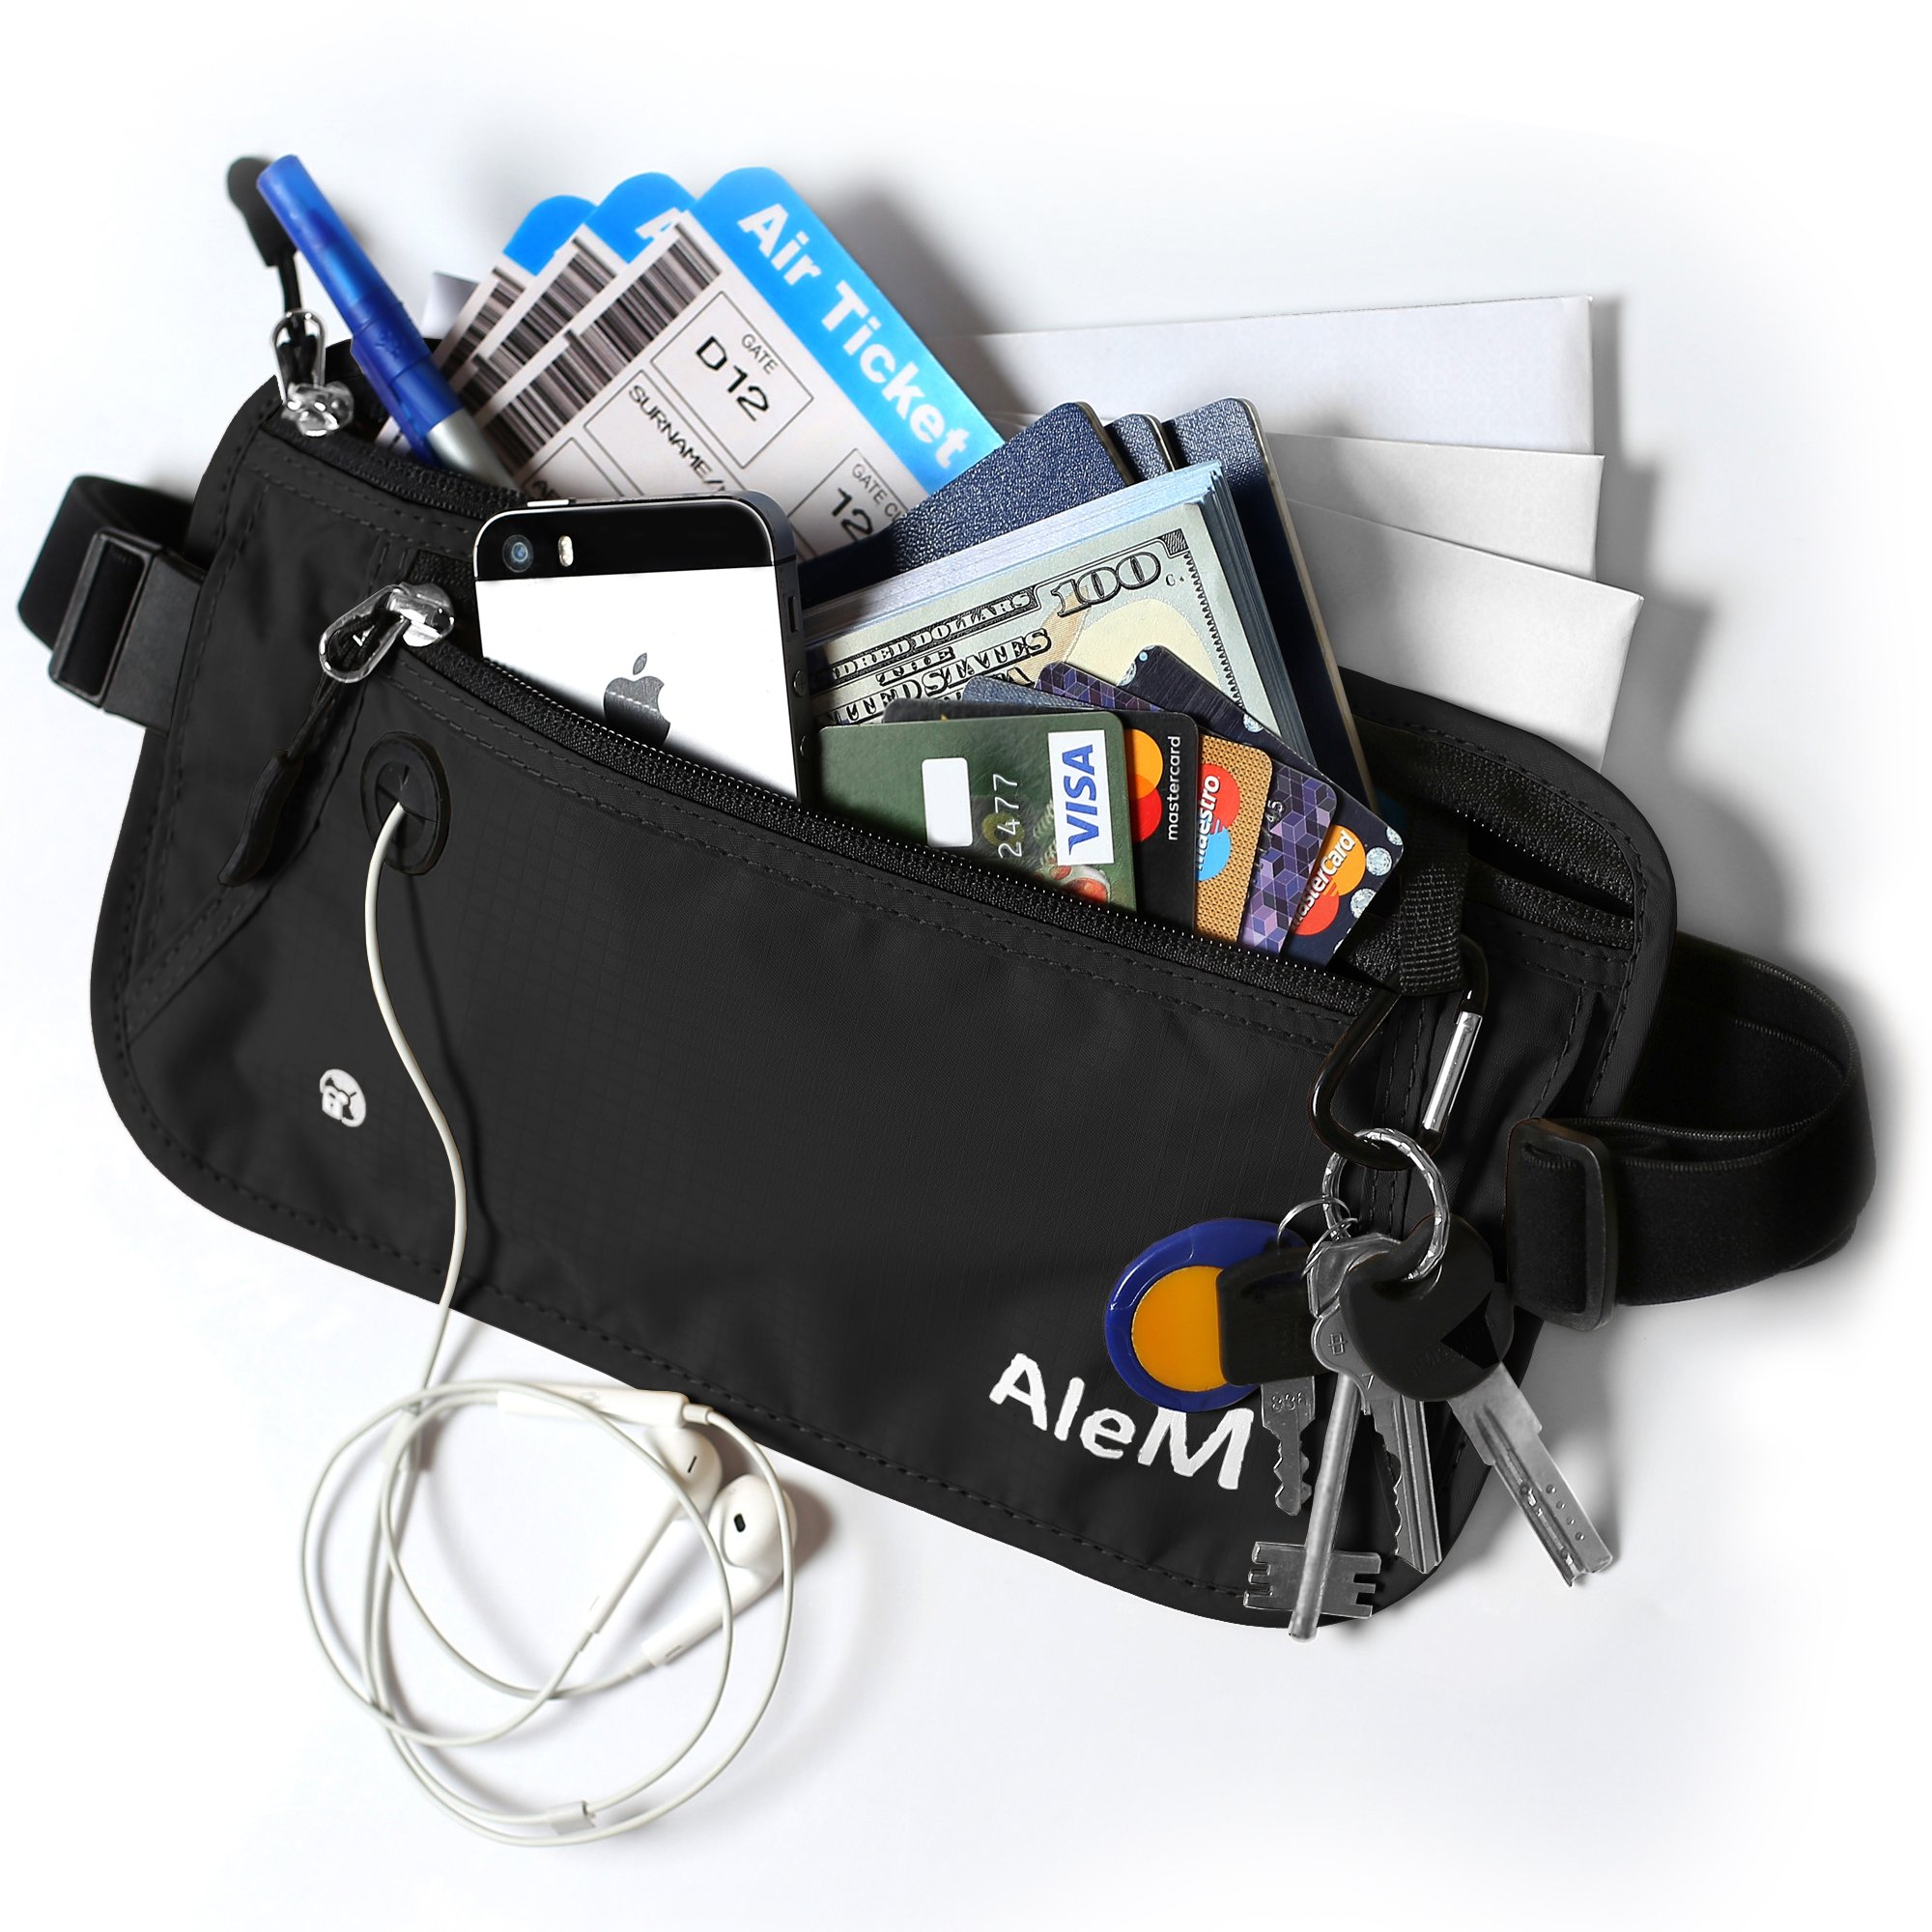 Travel RFID Blocking Money Belt - Hidden Wallet & Passport Holder (Black)